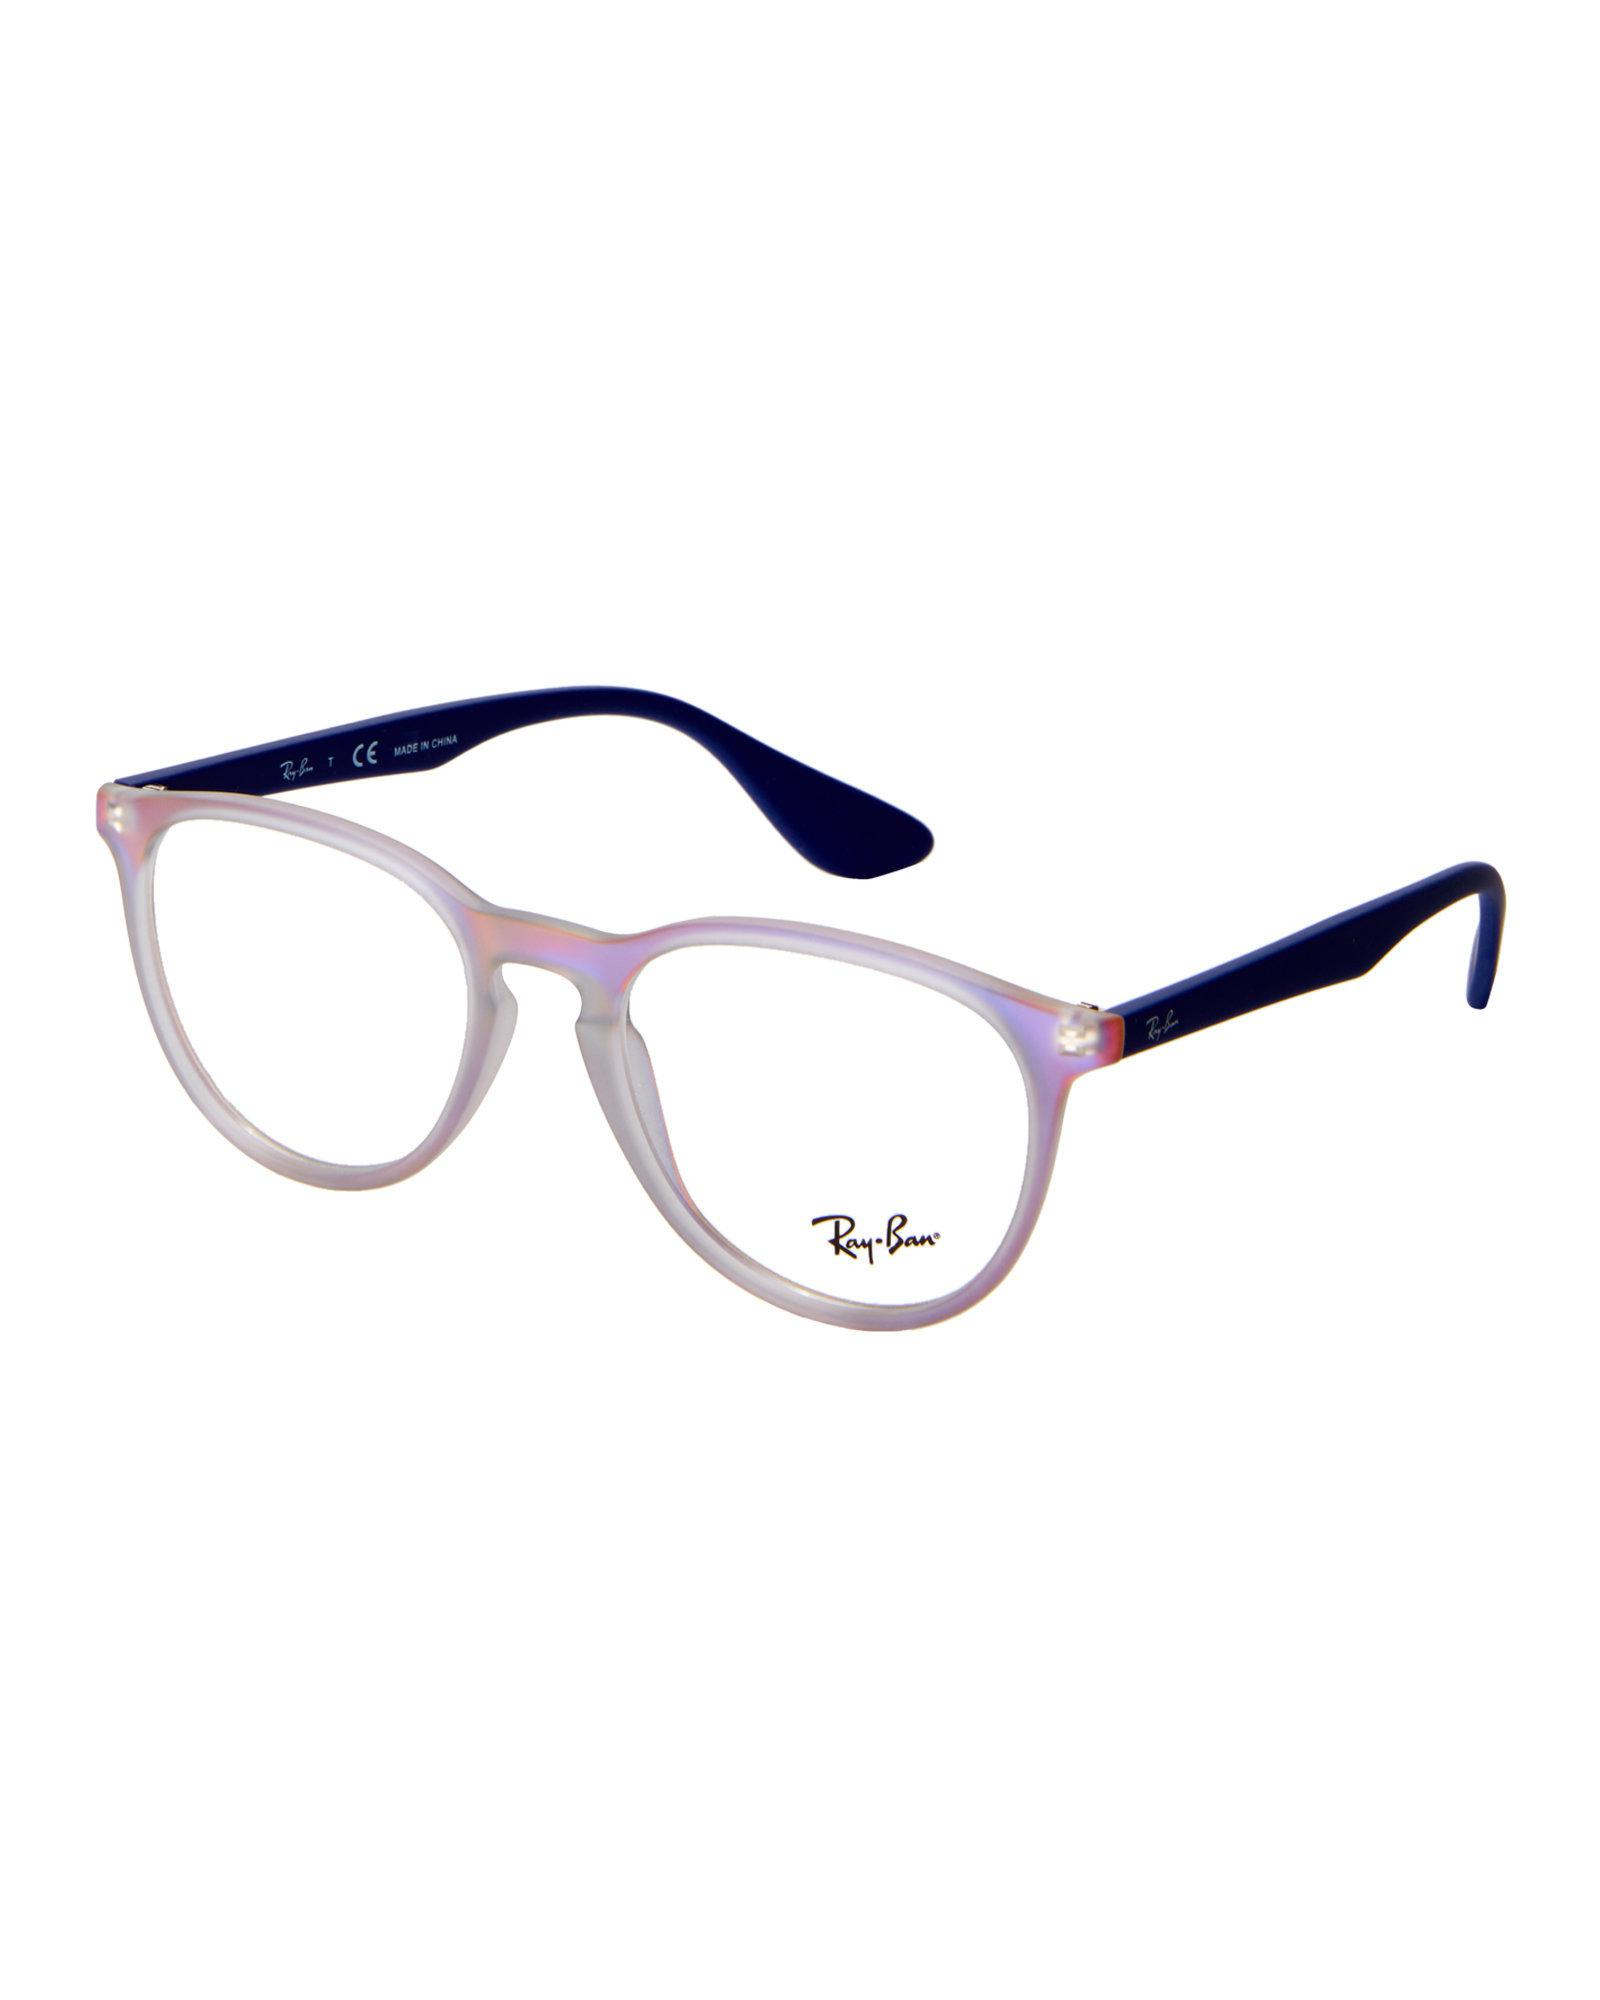 23a11c6527 Lyst - Ray-Ban Rb7045 Two-Tone Round Frames